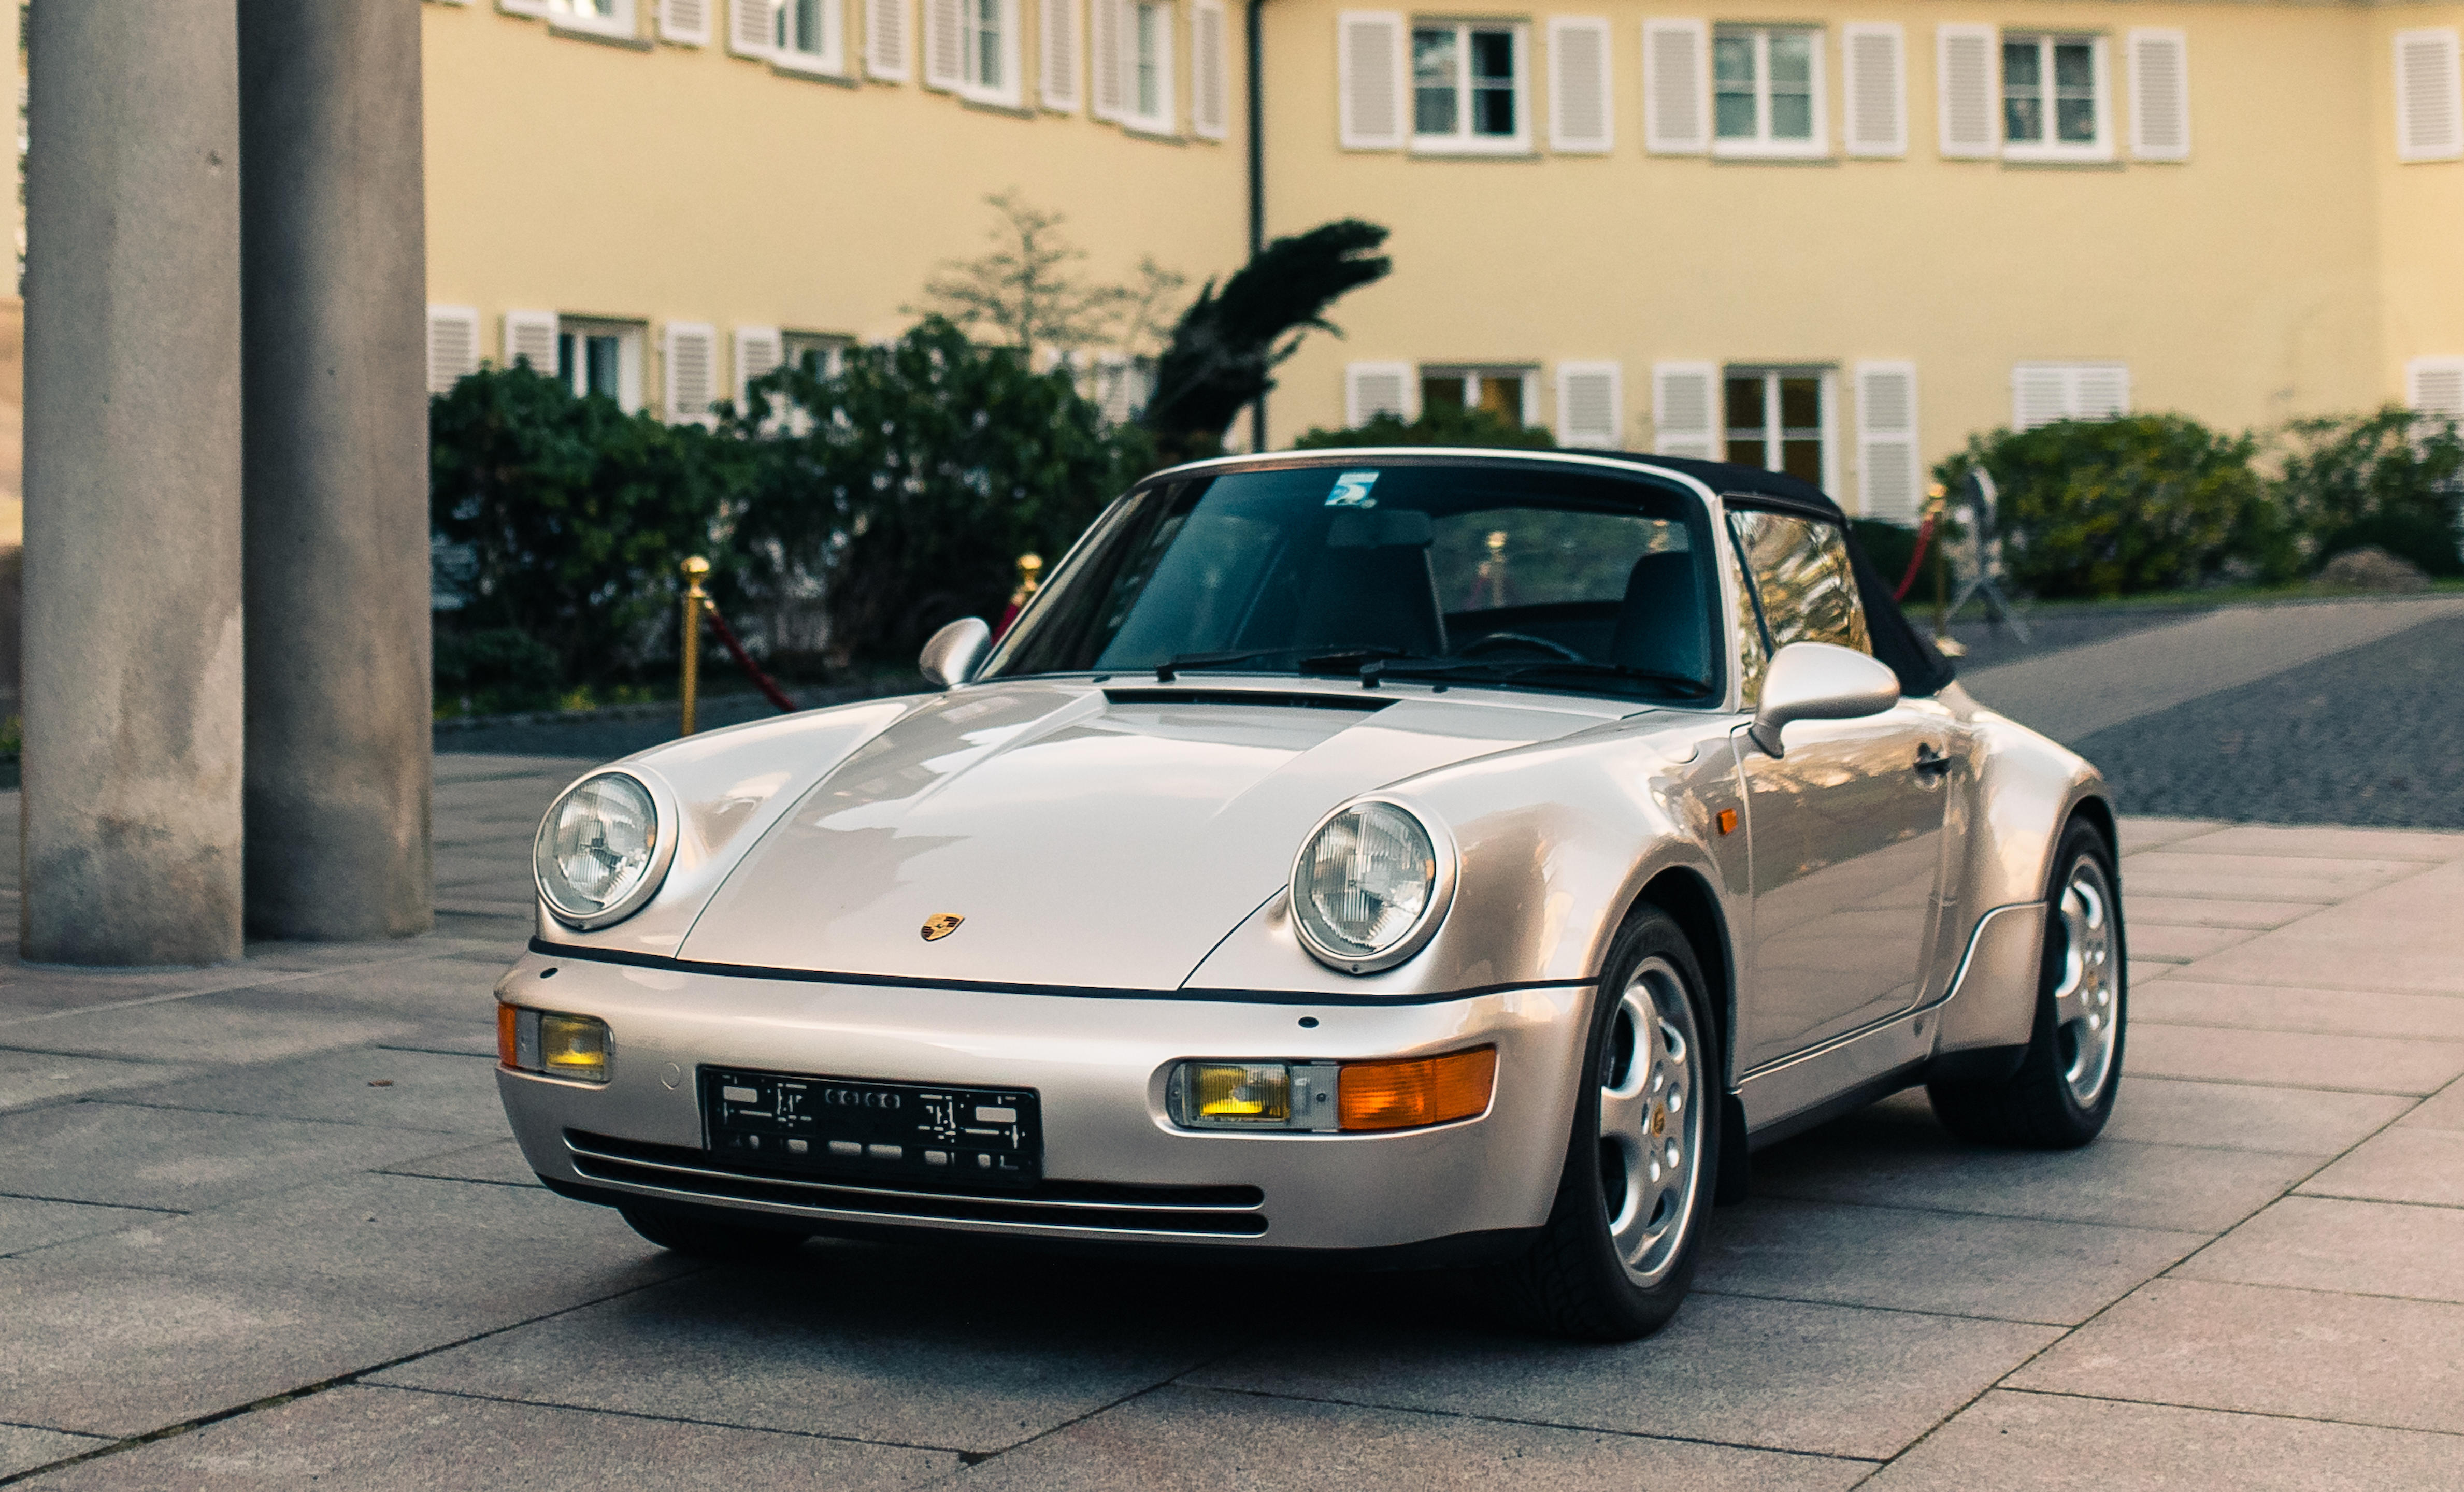 Delivered new to the late Diego Armando Maradona,1992 Porsche 911 Carrera 2 Type 964 'Works Turbo Look' Cabriolet  Chassis no. WP0ZZZ96ZNS452830